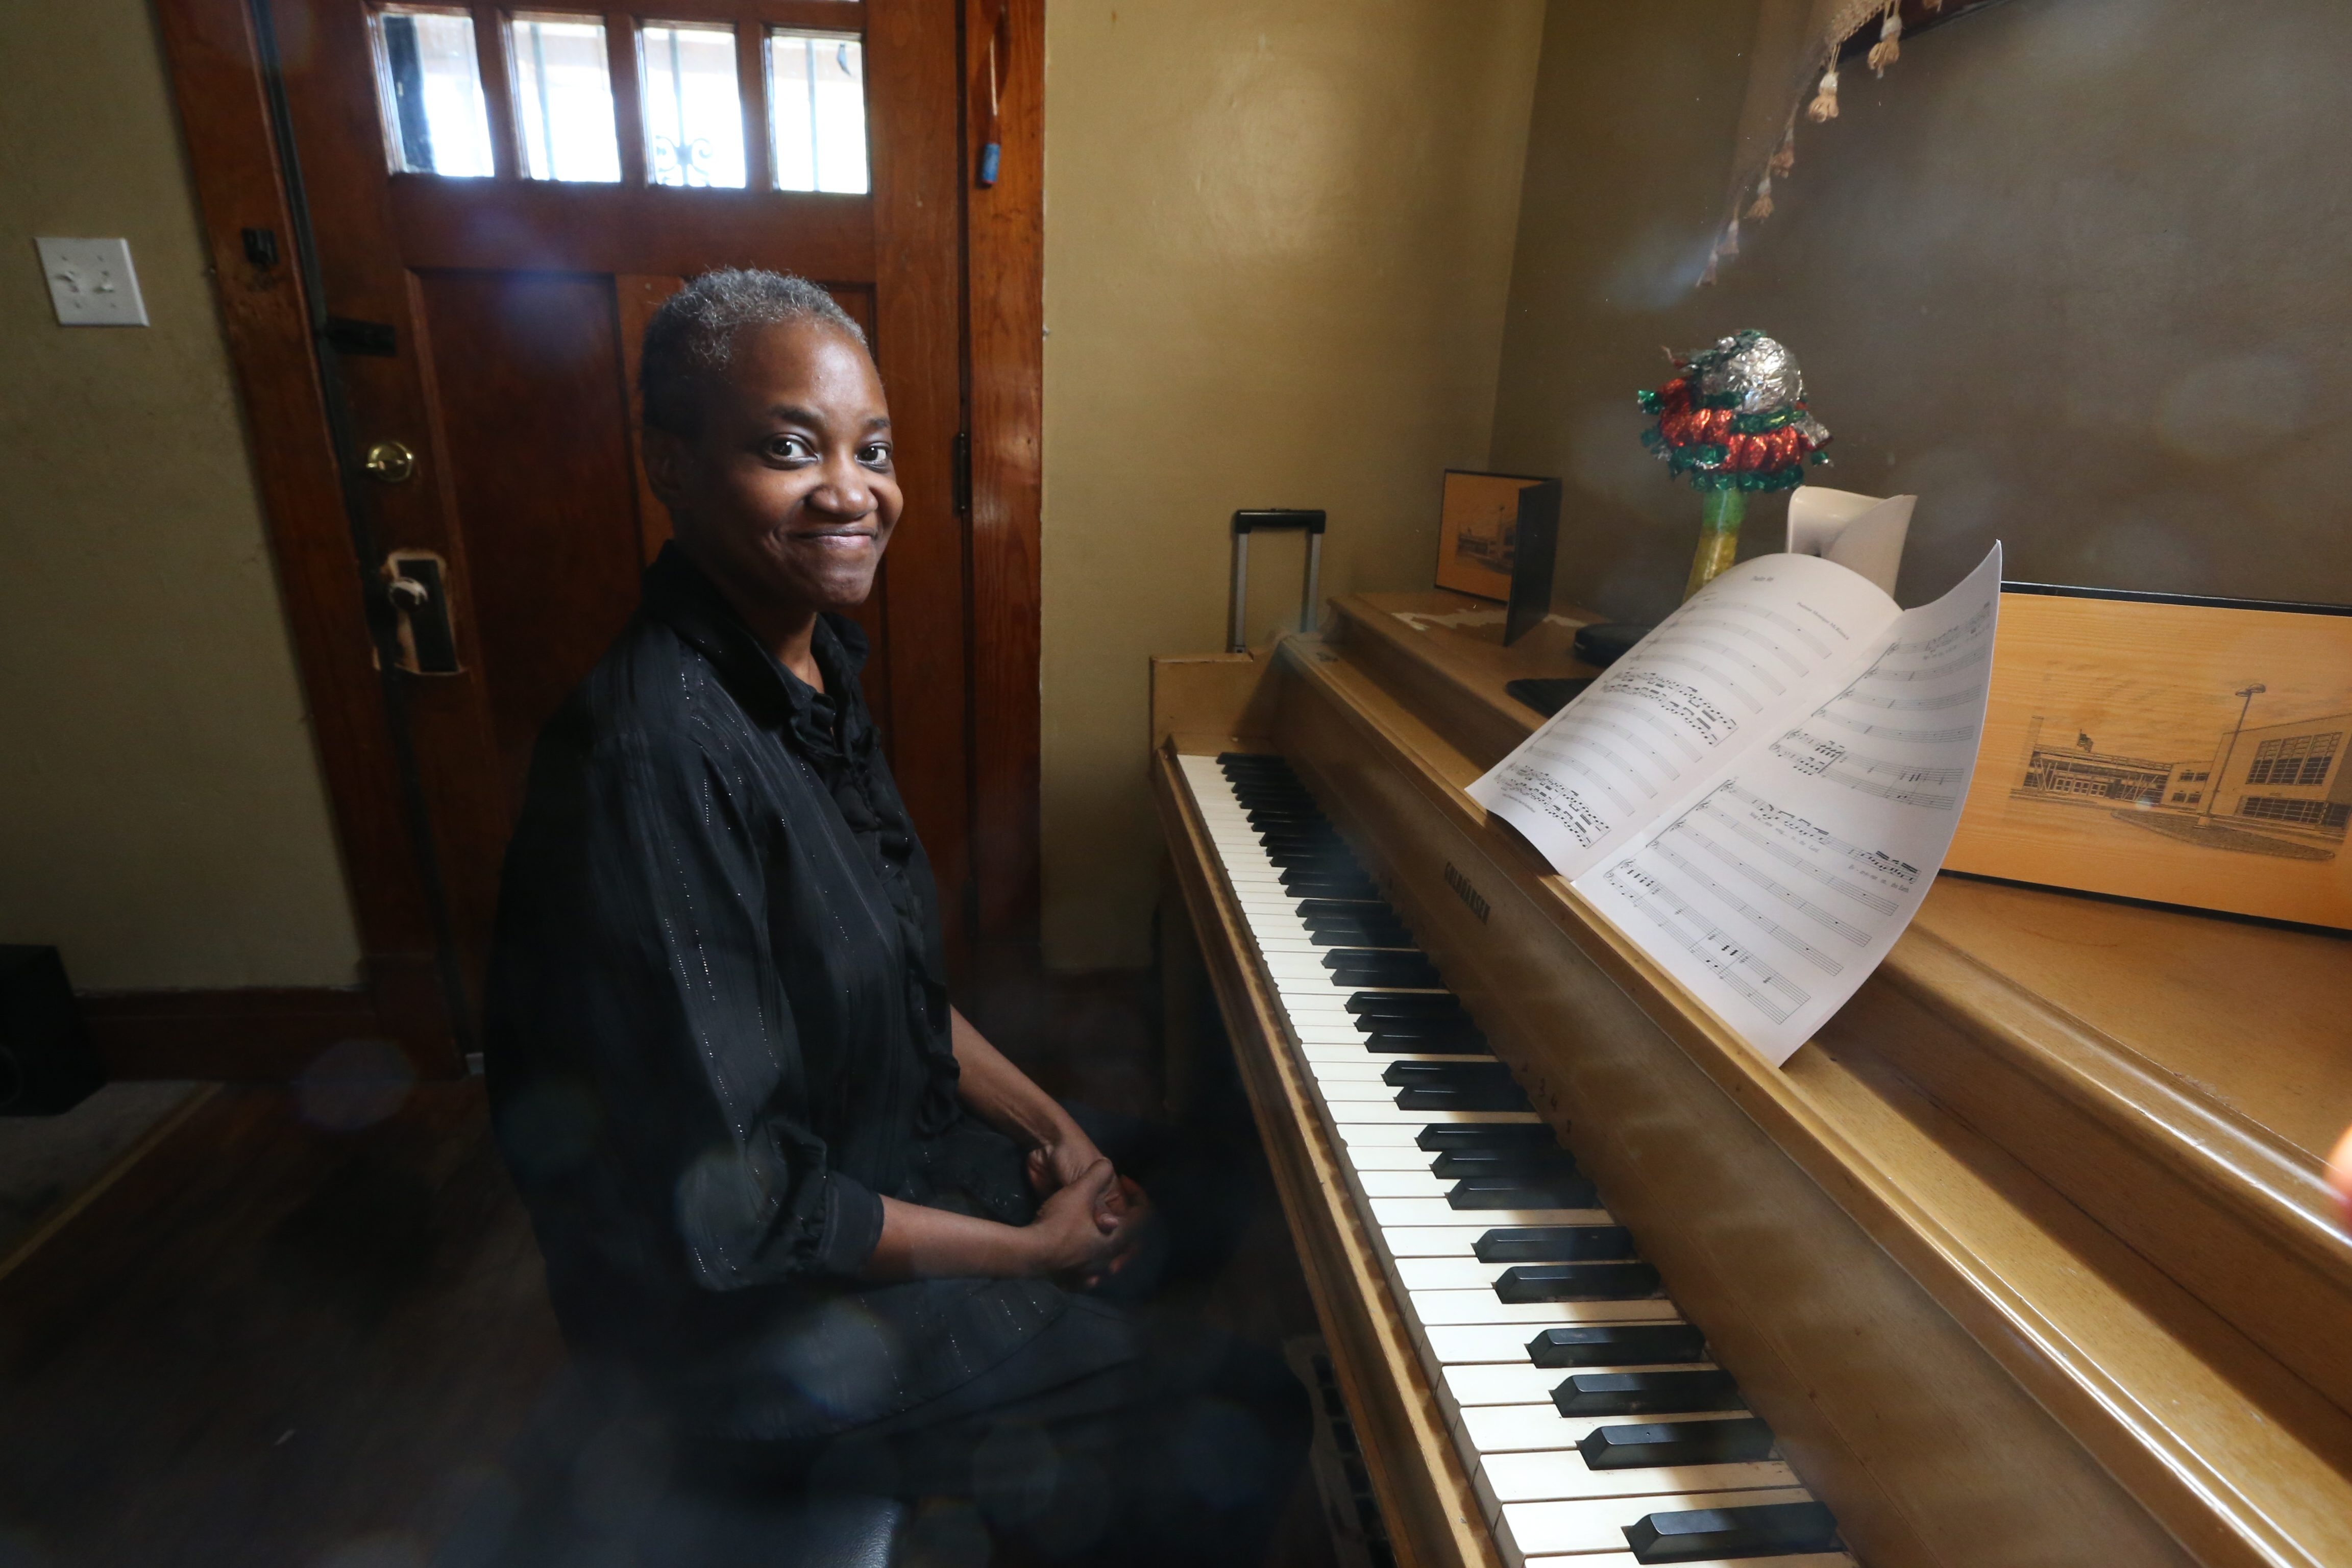 """Monique McKissick, a well-known local gospel singer, sings her """"Psalm 96"""" at  her home in Buffalo on Thursday. McKissick, who has Stage IV cancer, will be the beneficiary of a Gospel Fest Cancer Benefit on Saturday.    """"I want Monique to see the love and support this community has for her.""""  – Nicole Campfield, president of NCamped Ministries"""